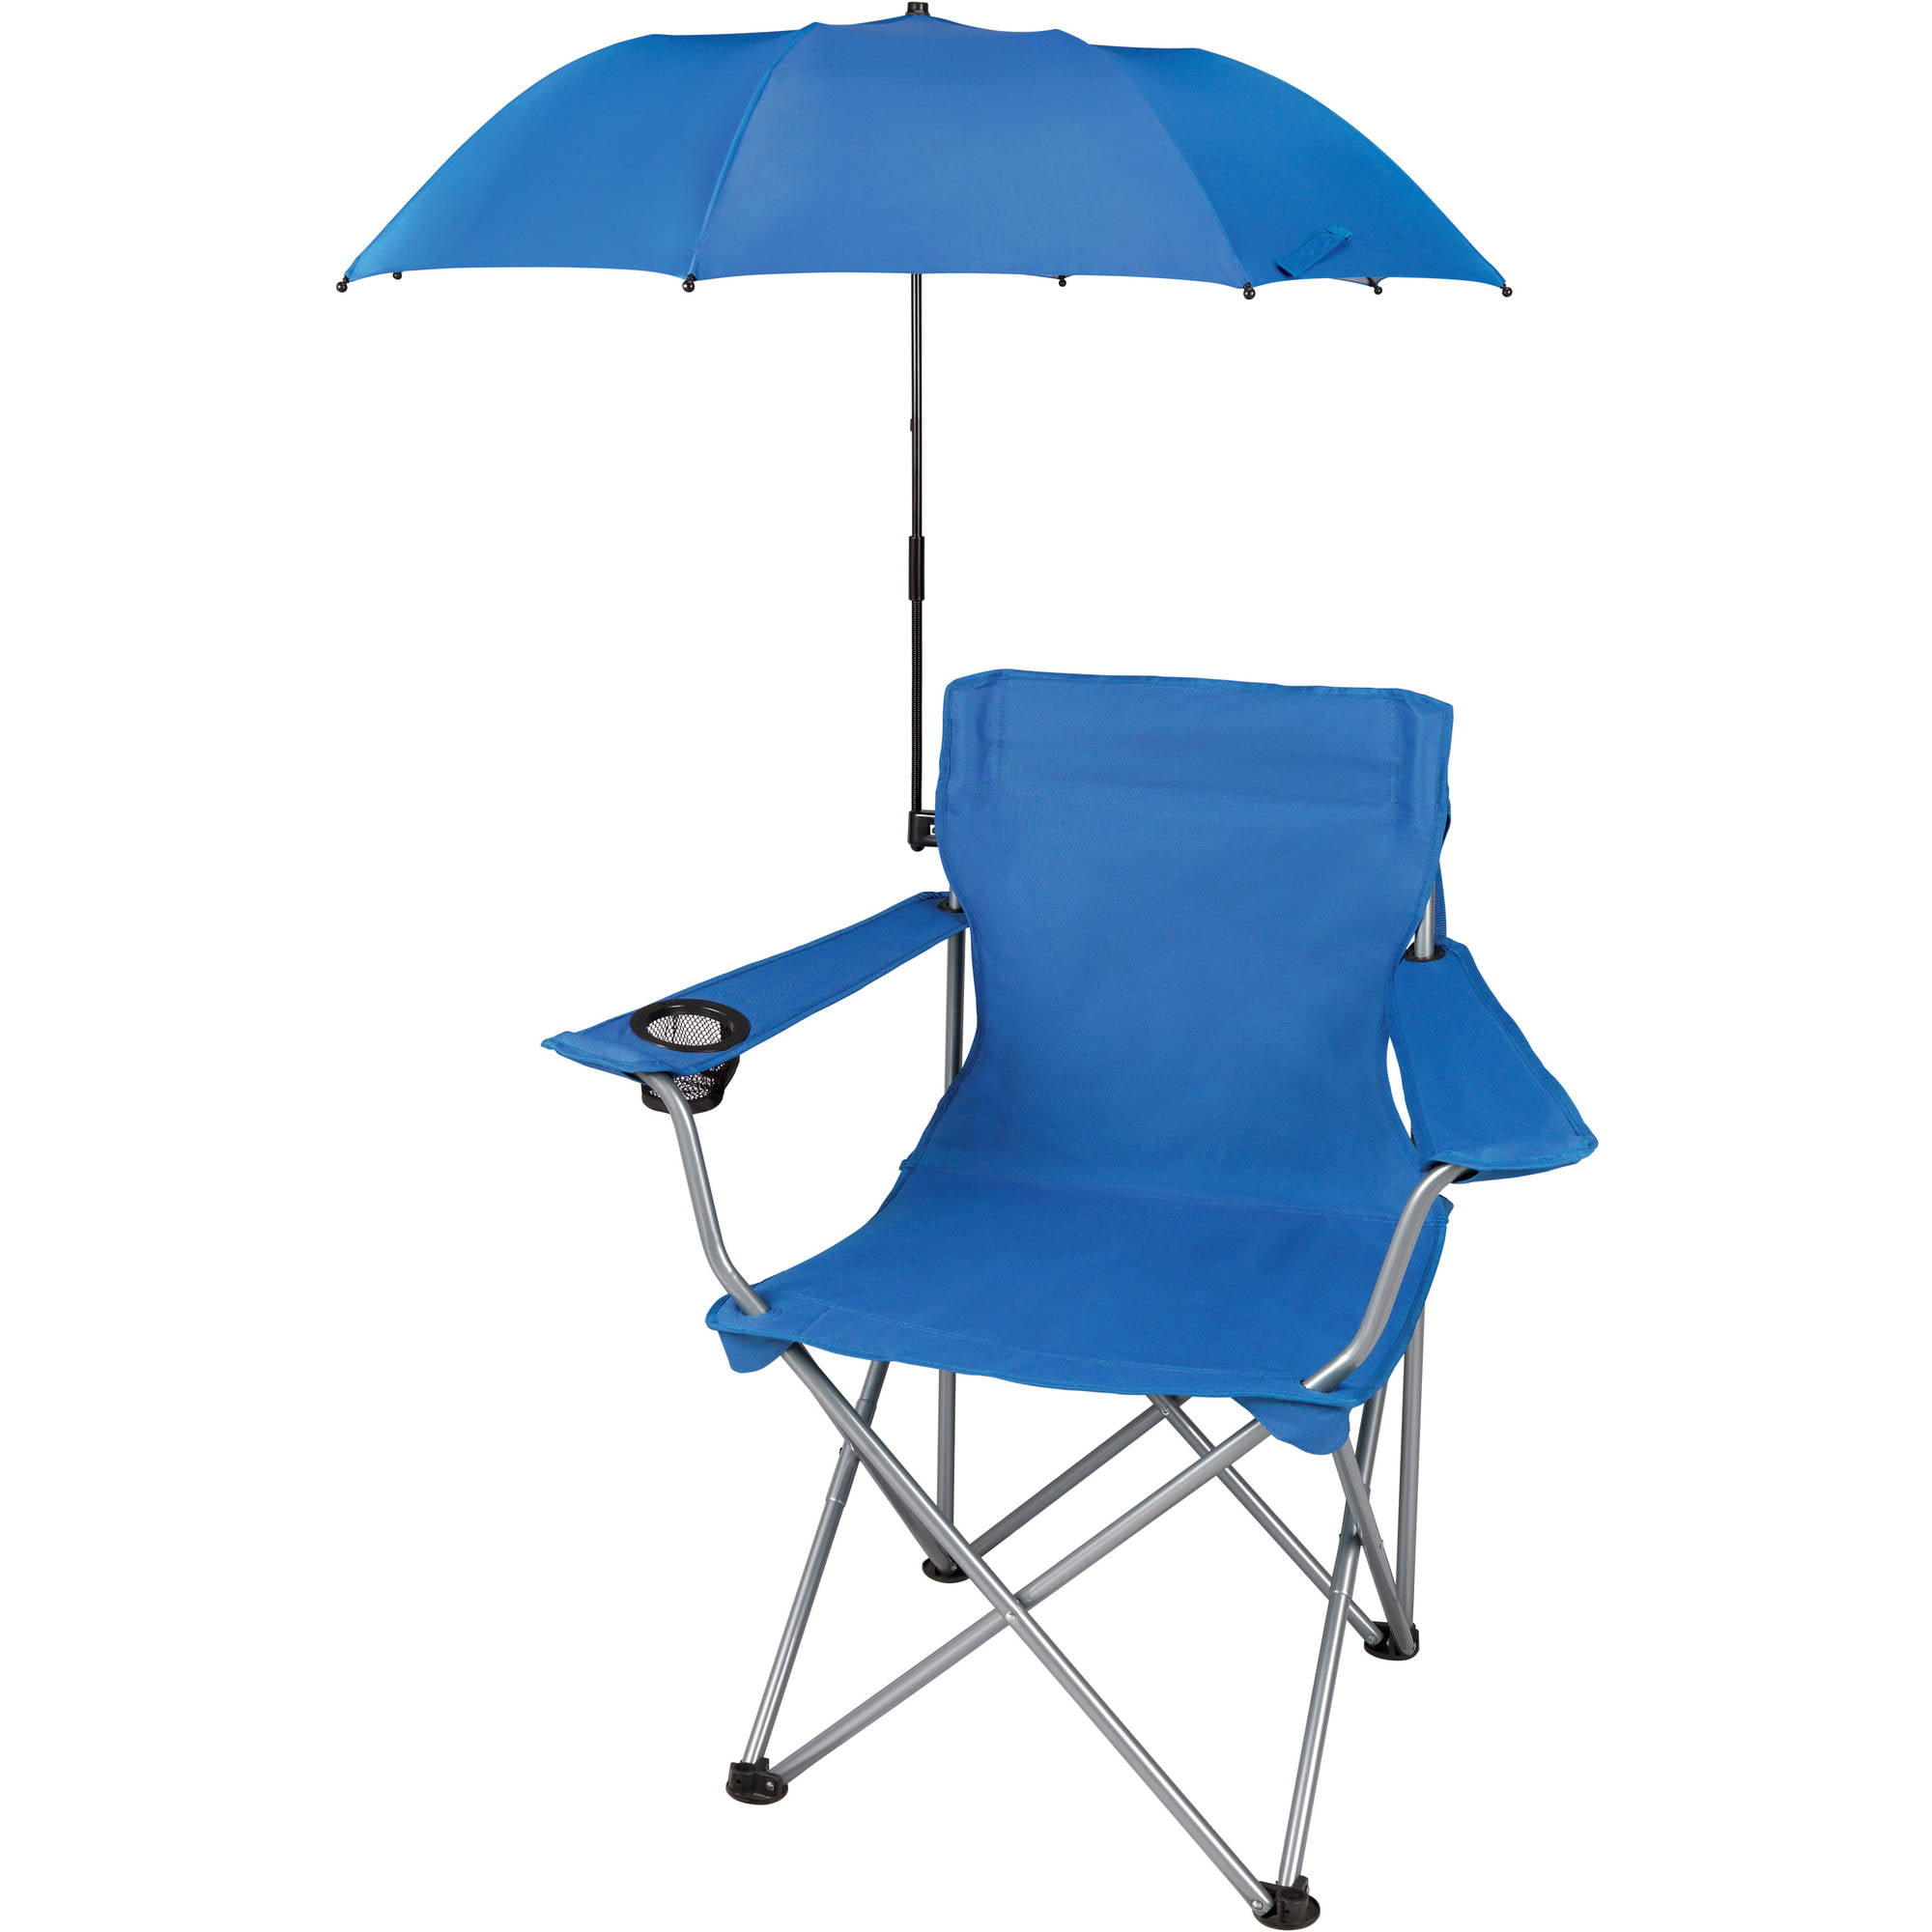 Camping chairs with umbrella - Ozark Trail Outdoor Chair Umbrella Attachment Chair Sold Separately Walmart Com